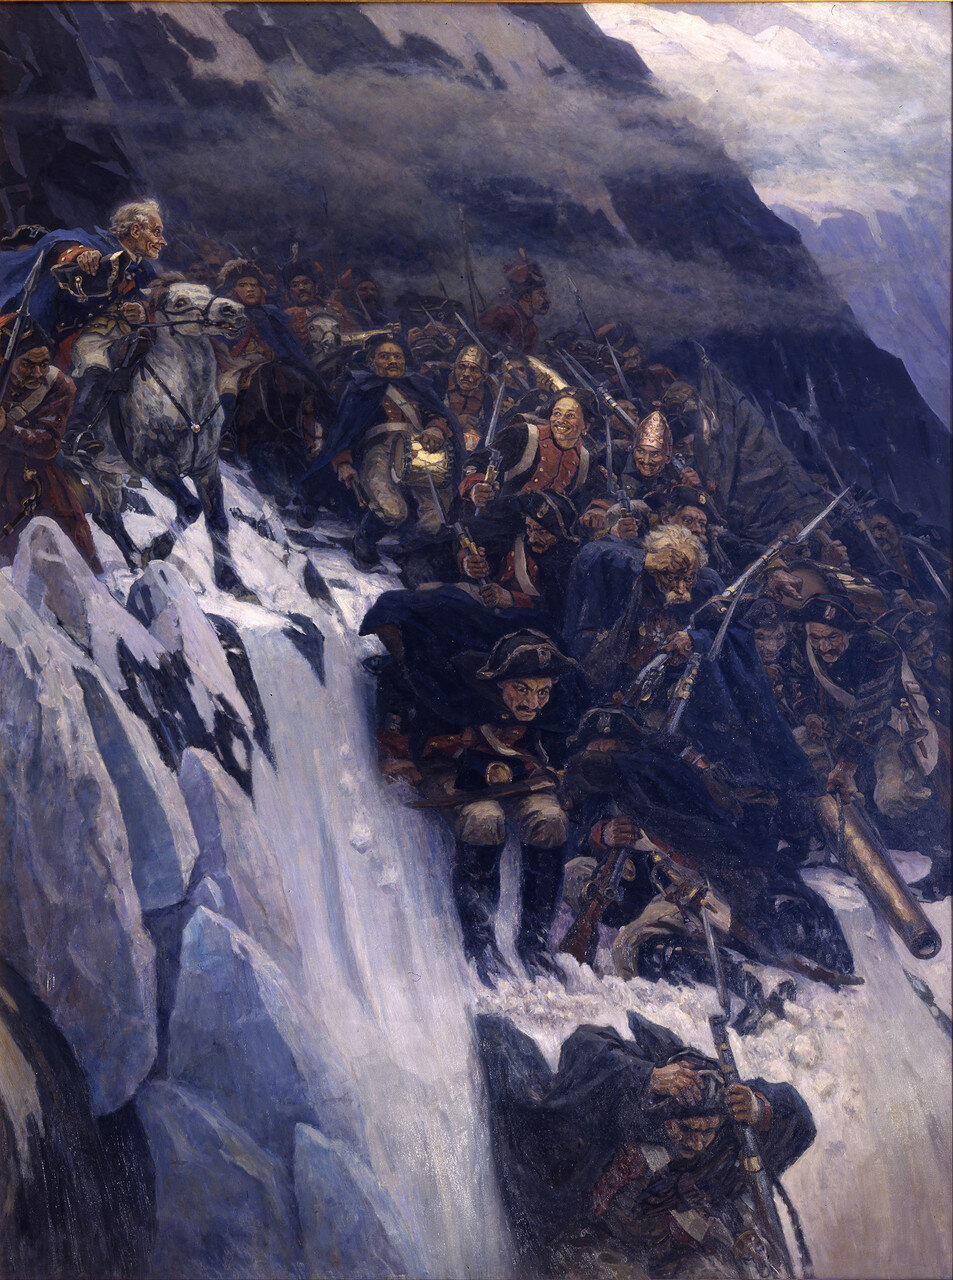 Vasily_Surikov_-_Suvorov_Crossing_the_Alps_in_1799_-_Google_Art_Project.jpg